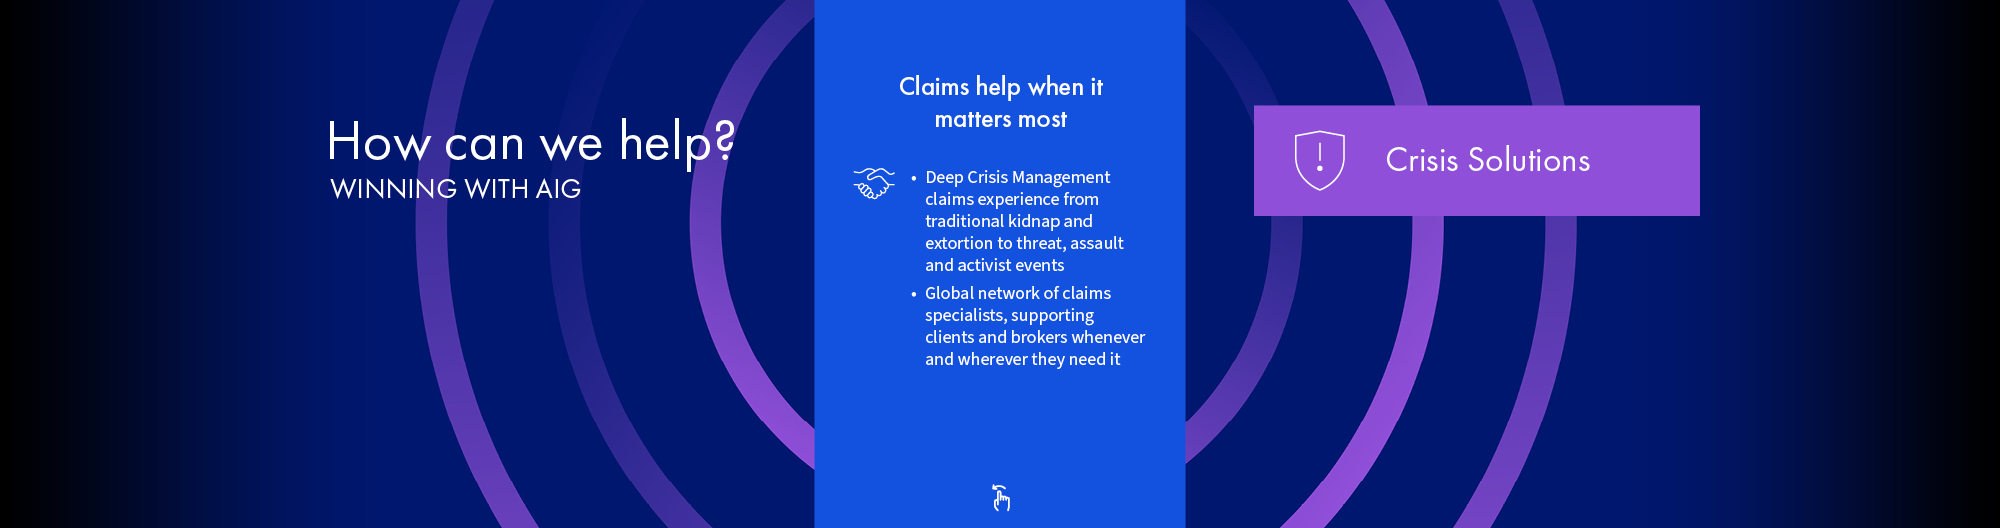 Crisis Solutions Claims